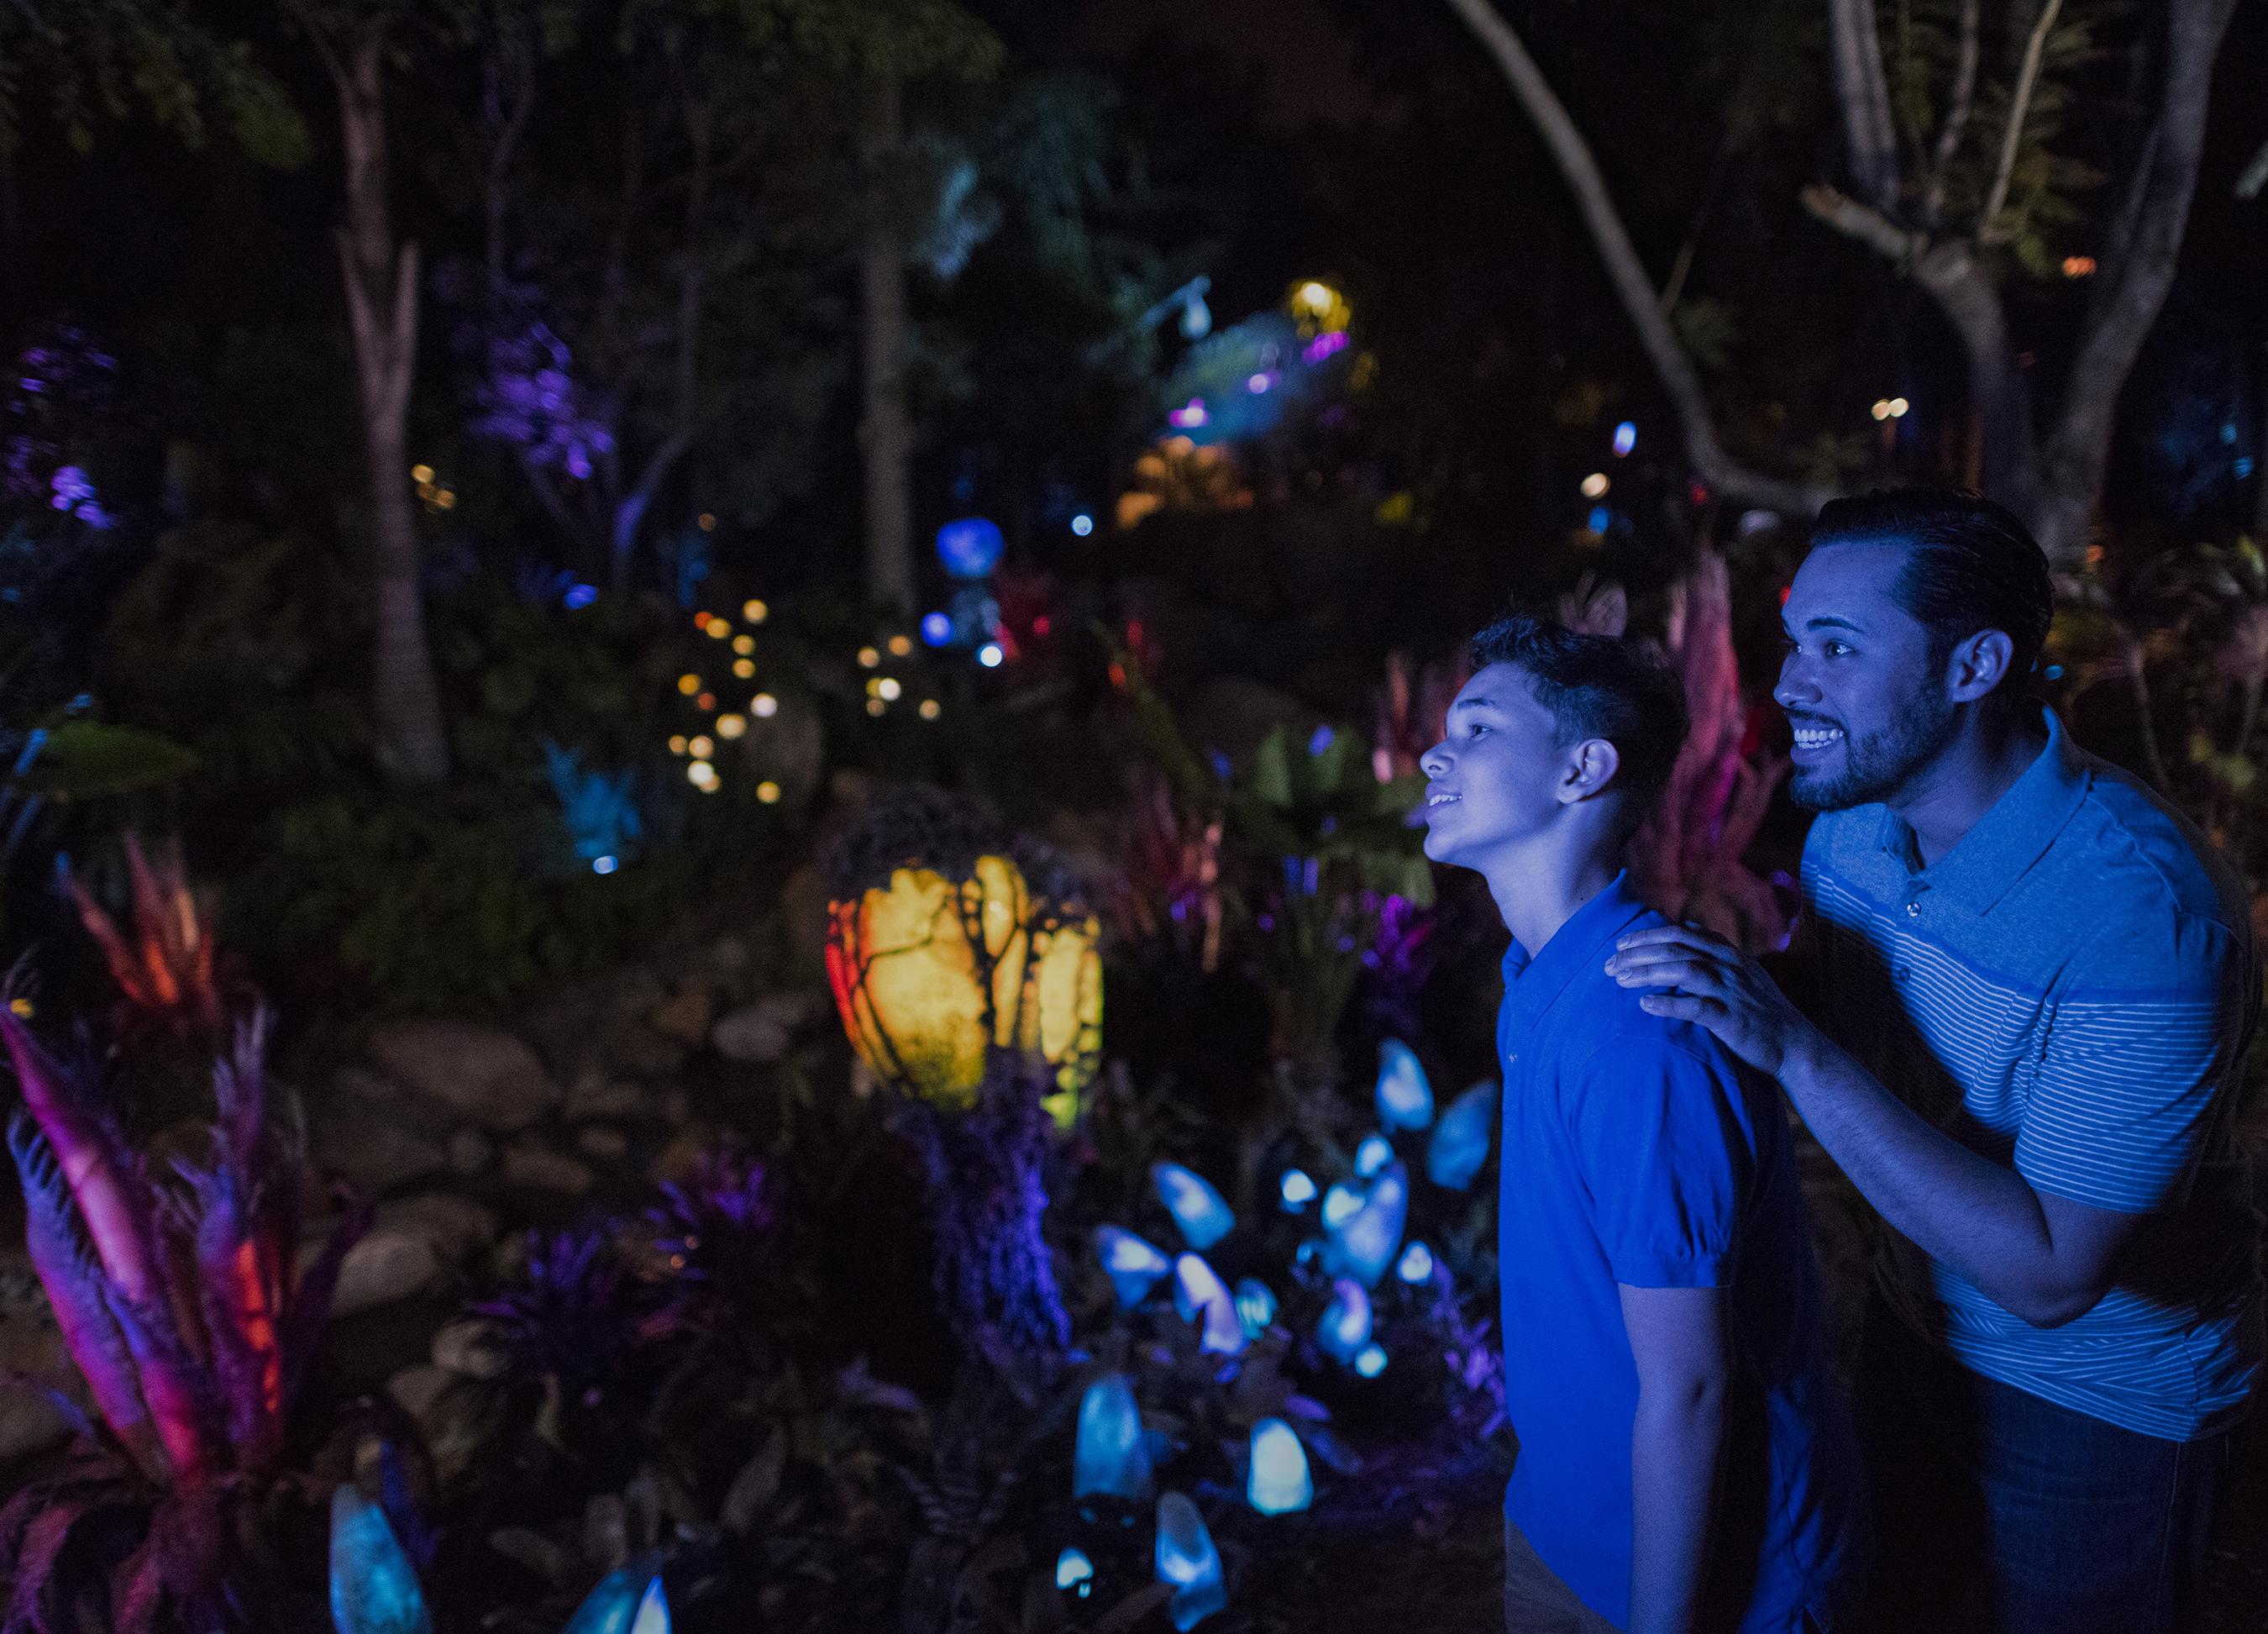 Bioluminescent flora in Pandora